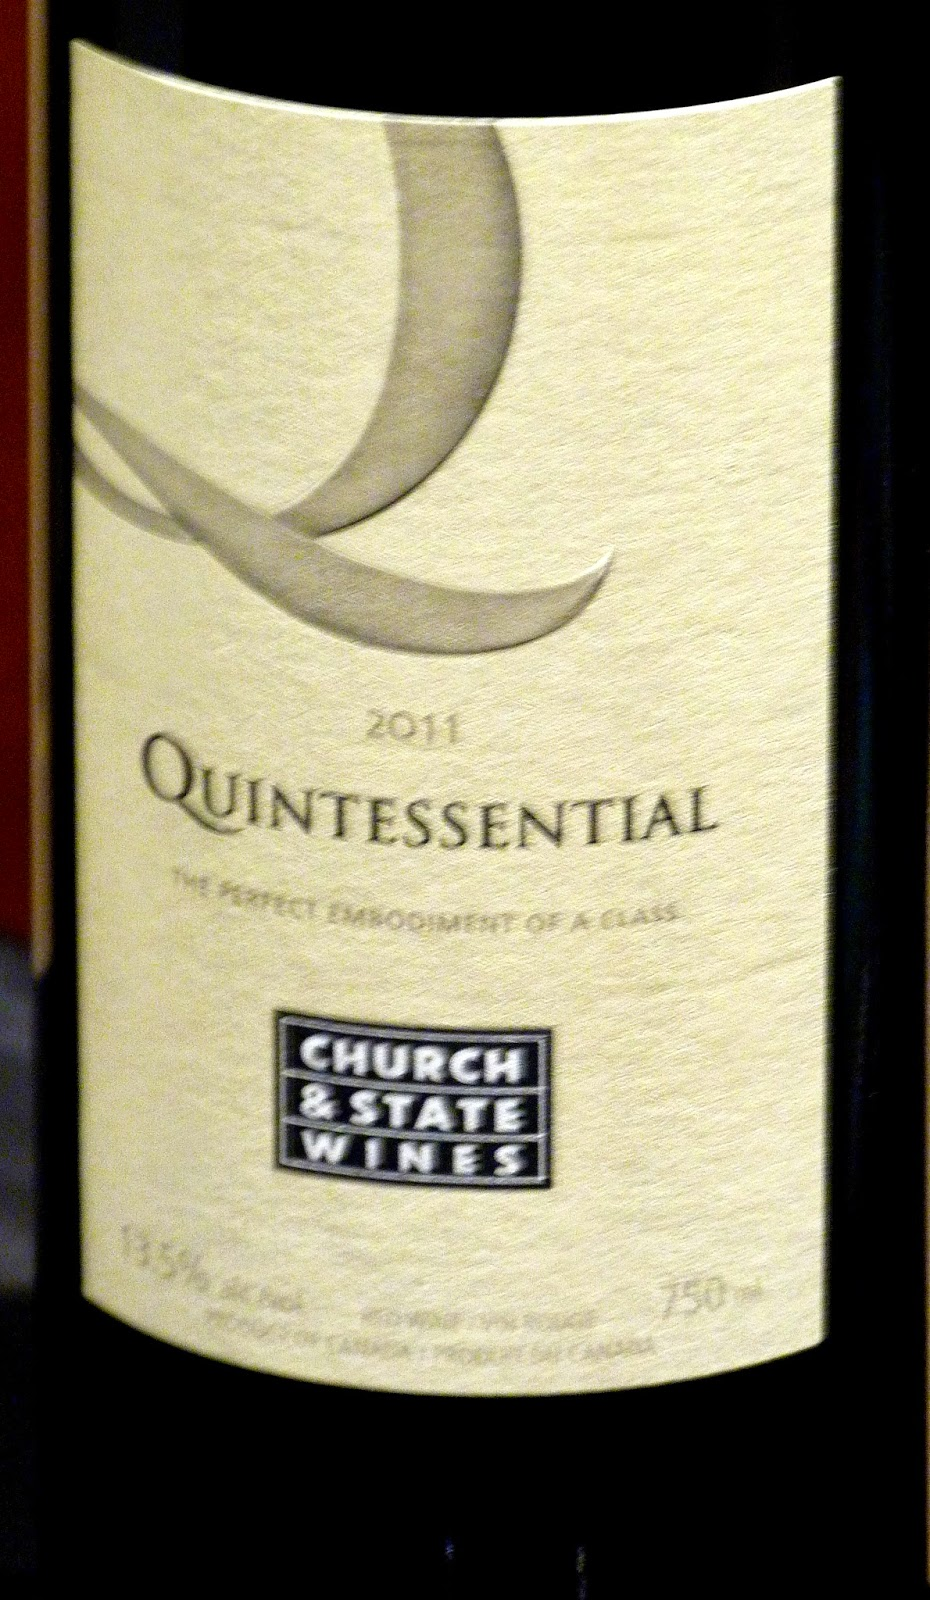 john schreiner on wine church state quintessential wins church and state quintessential 2011 55 merlot 70% cabernet franc 15% cabernet sauvignon 5% malbec 5% petit verdot 5% this is a wine a track